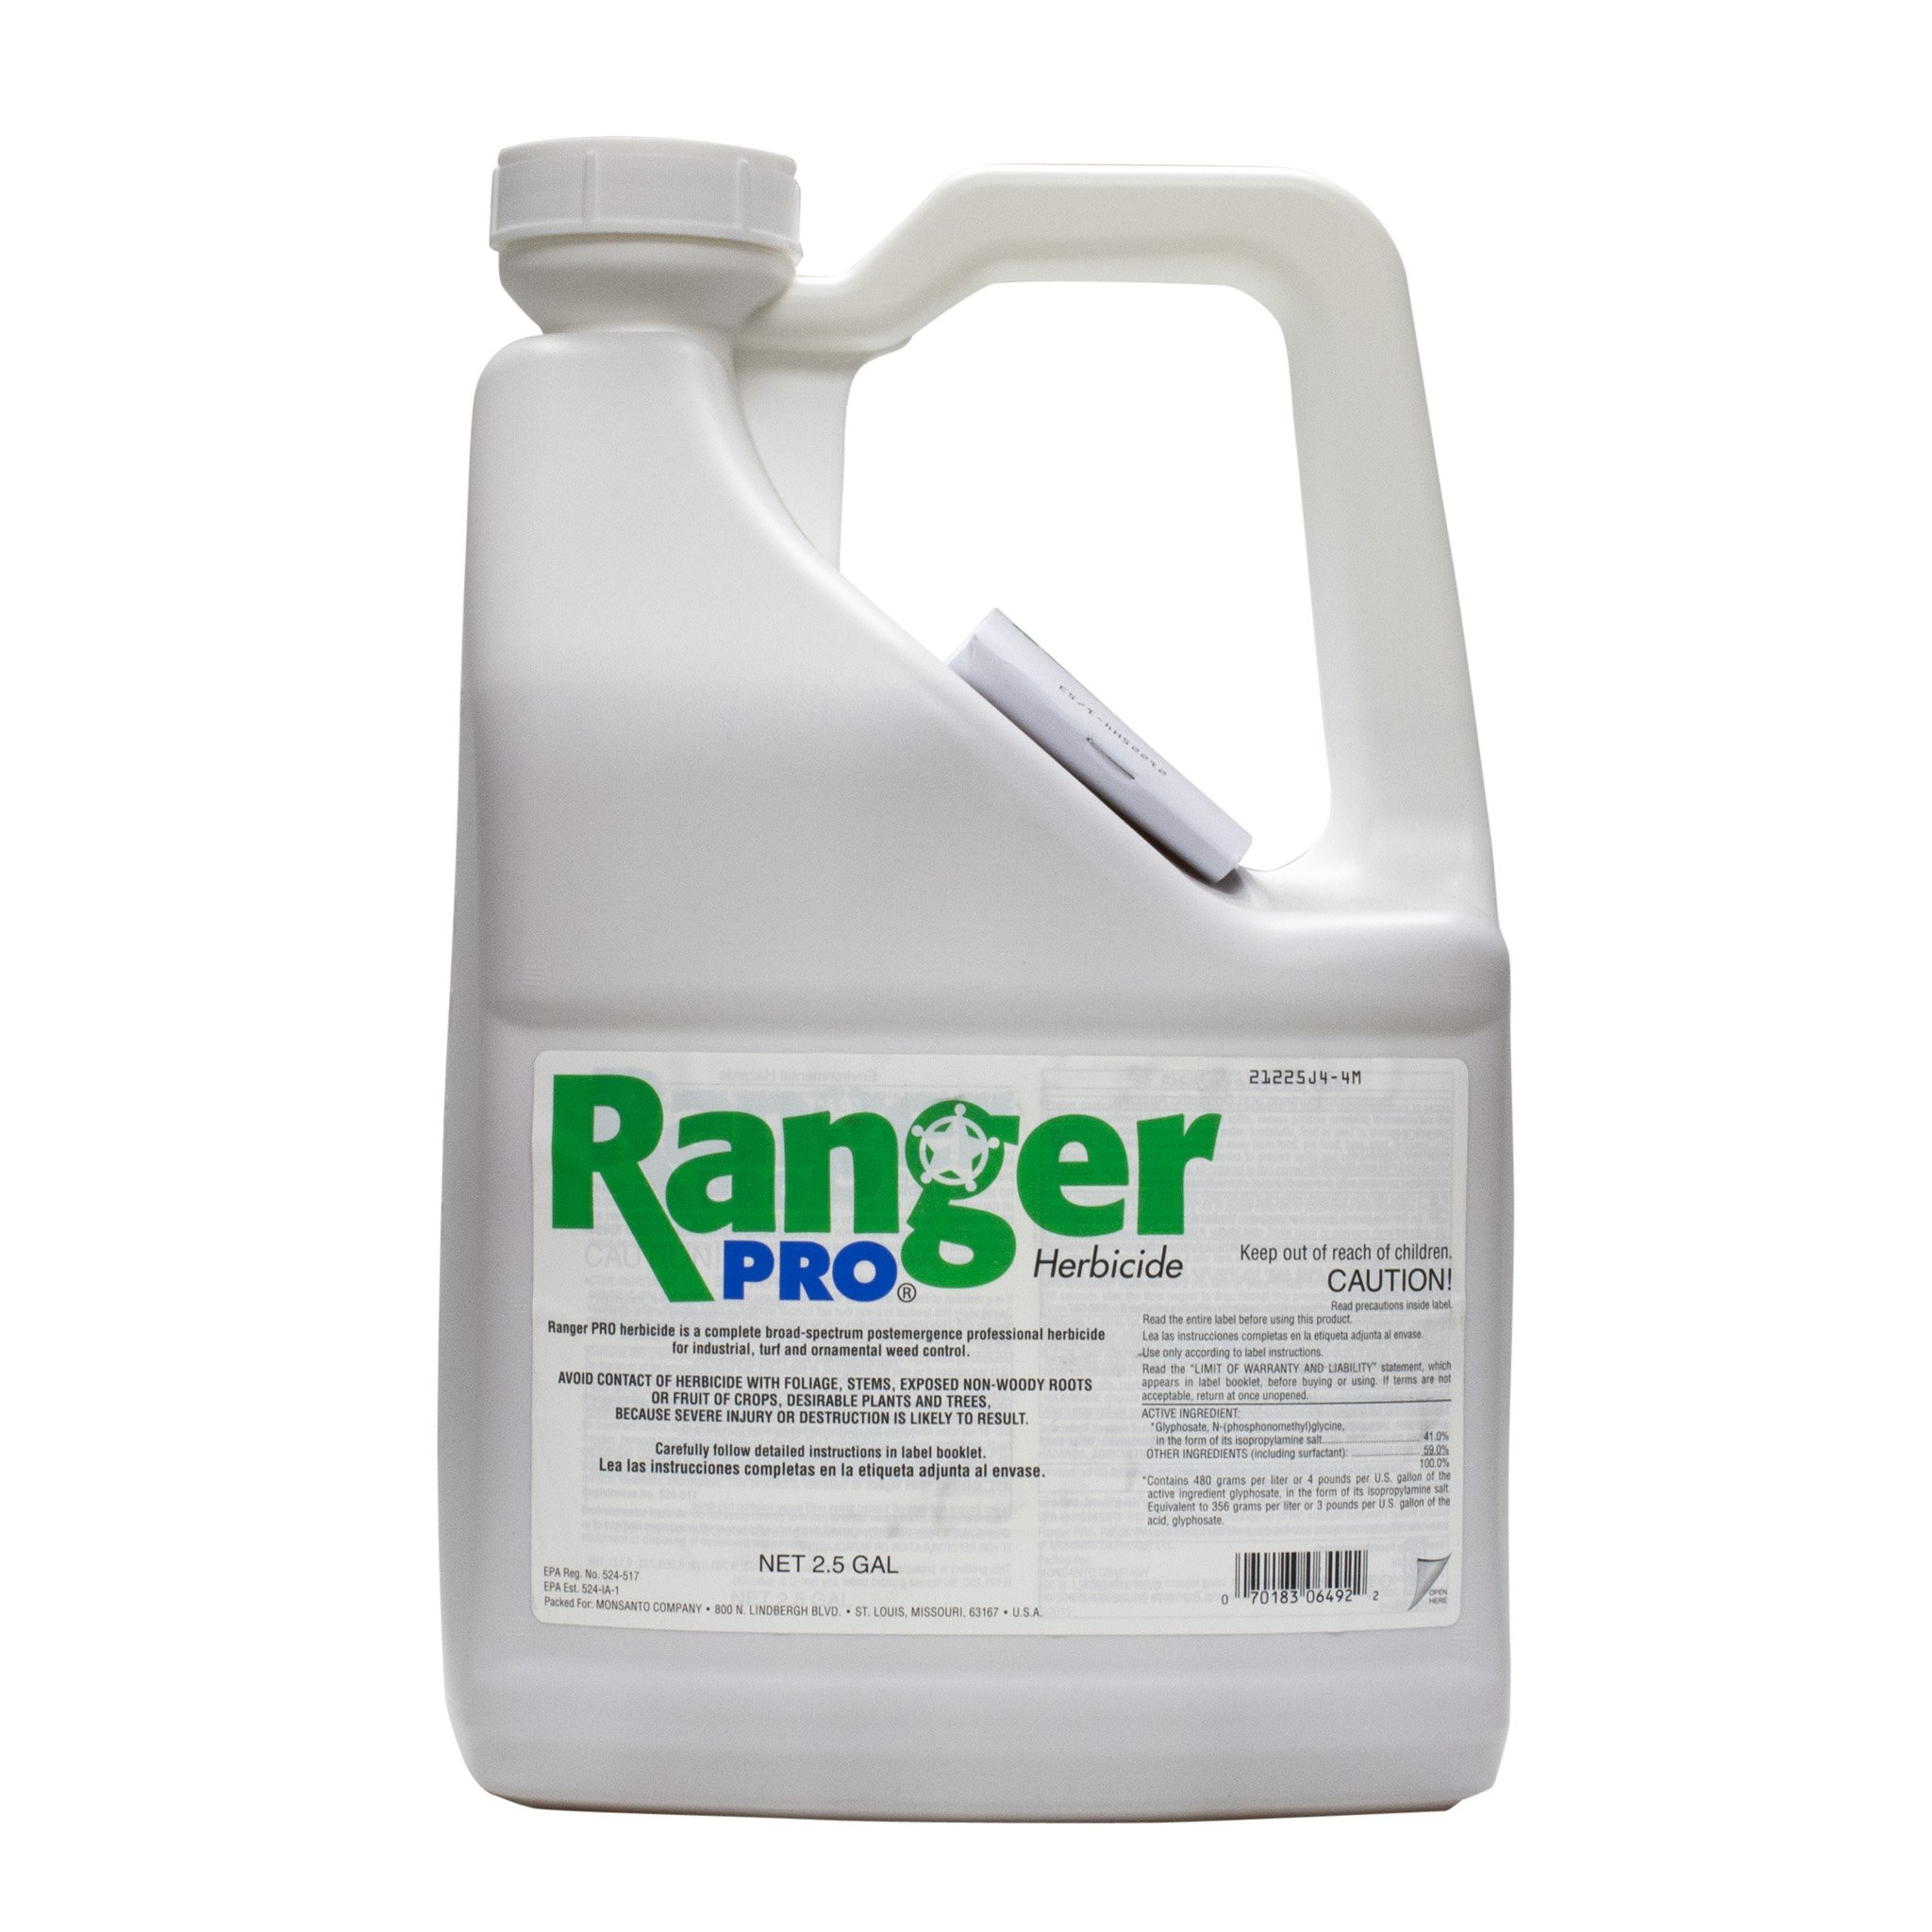 Ranger Pro 41% Glyphosate 5 Gallons 2 x 2.5/Gal Jug Systemic Herbicide Same as Round Up Pro